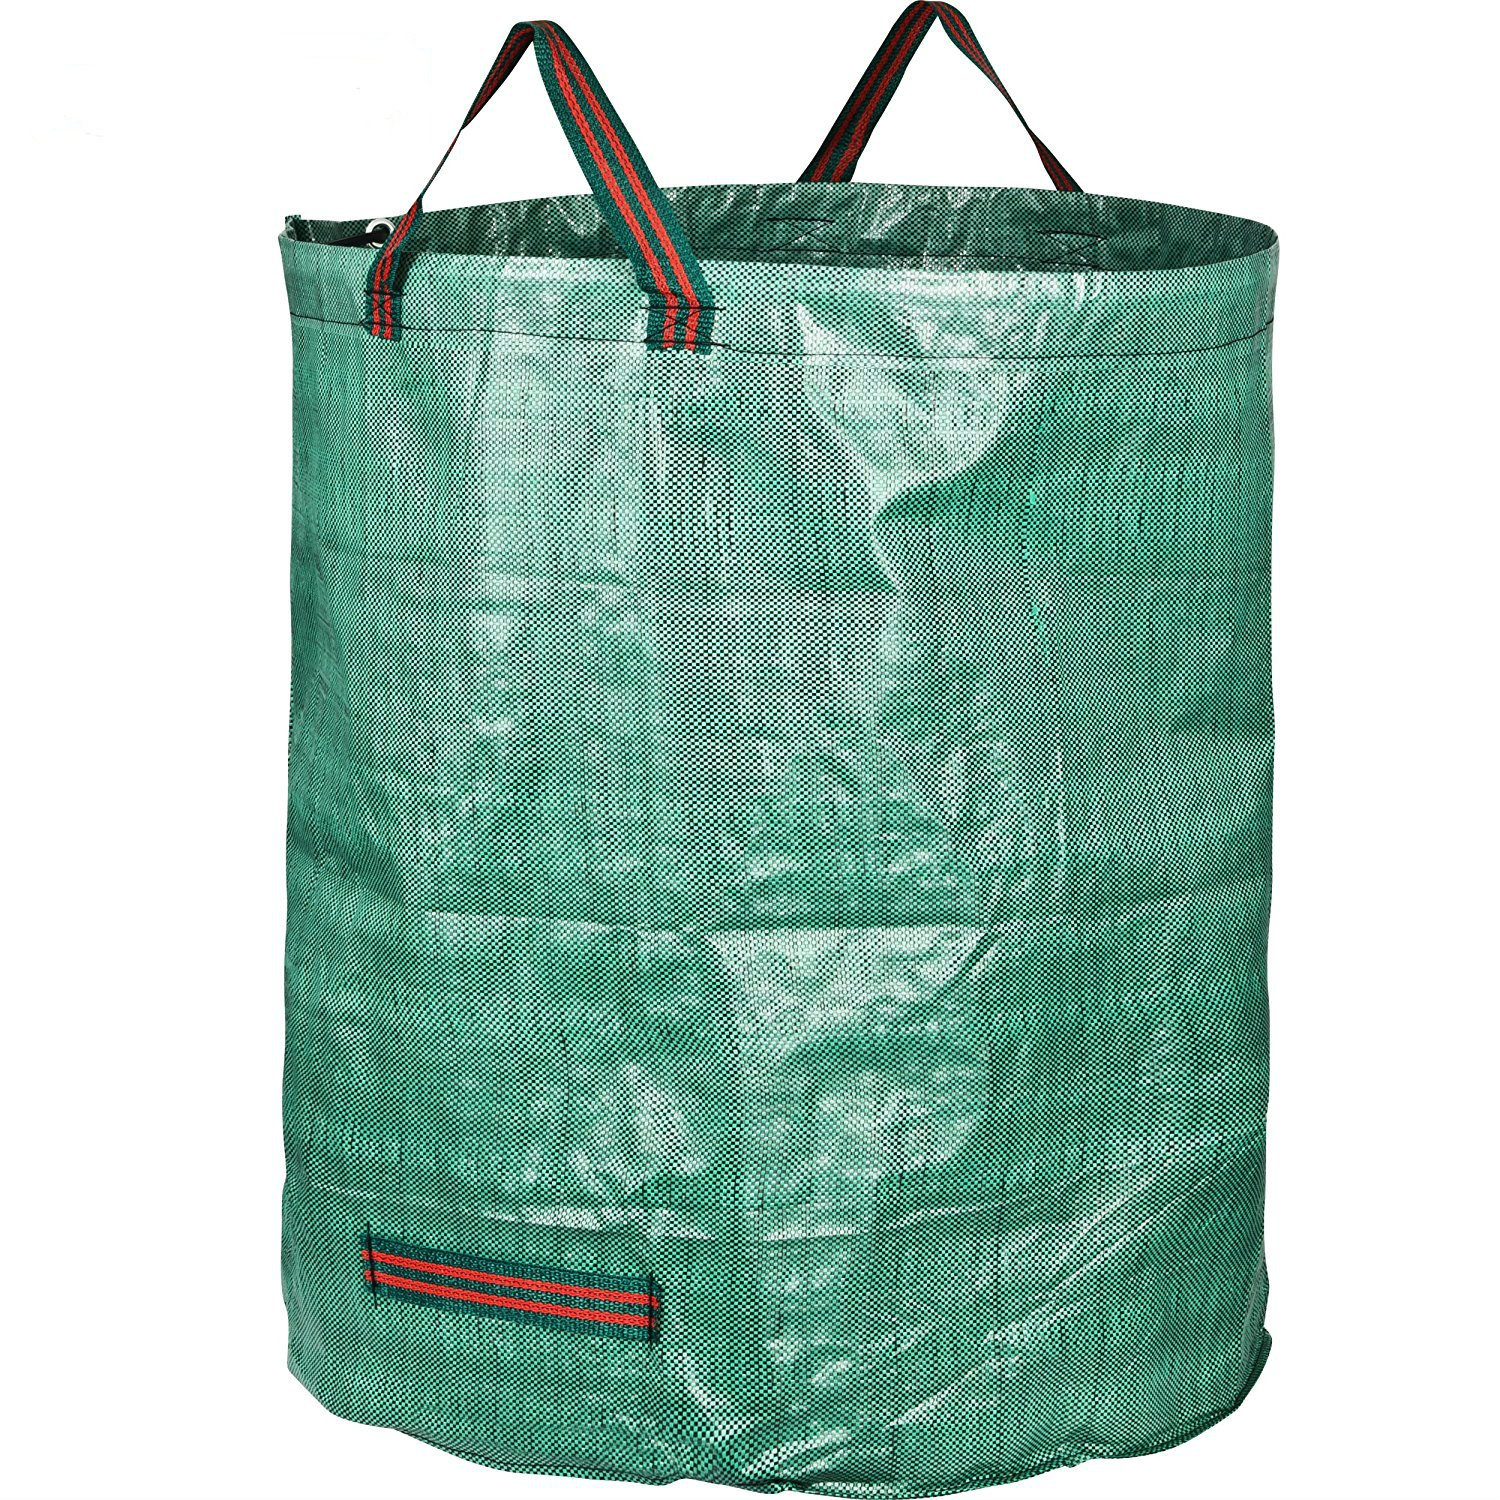 Garden Mile® 272L Large Reusable Green Garden Waste Refuse Sack Bags With Handles Shower Proof Tear Resistant Grass Bag Compost Autumn Leaves Collector Home Recycling Bag (3)